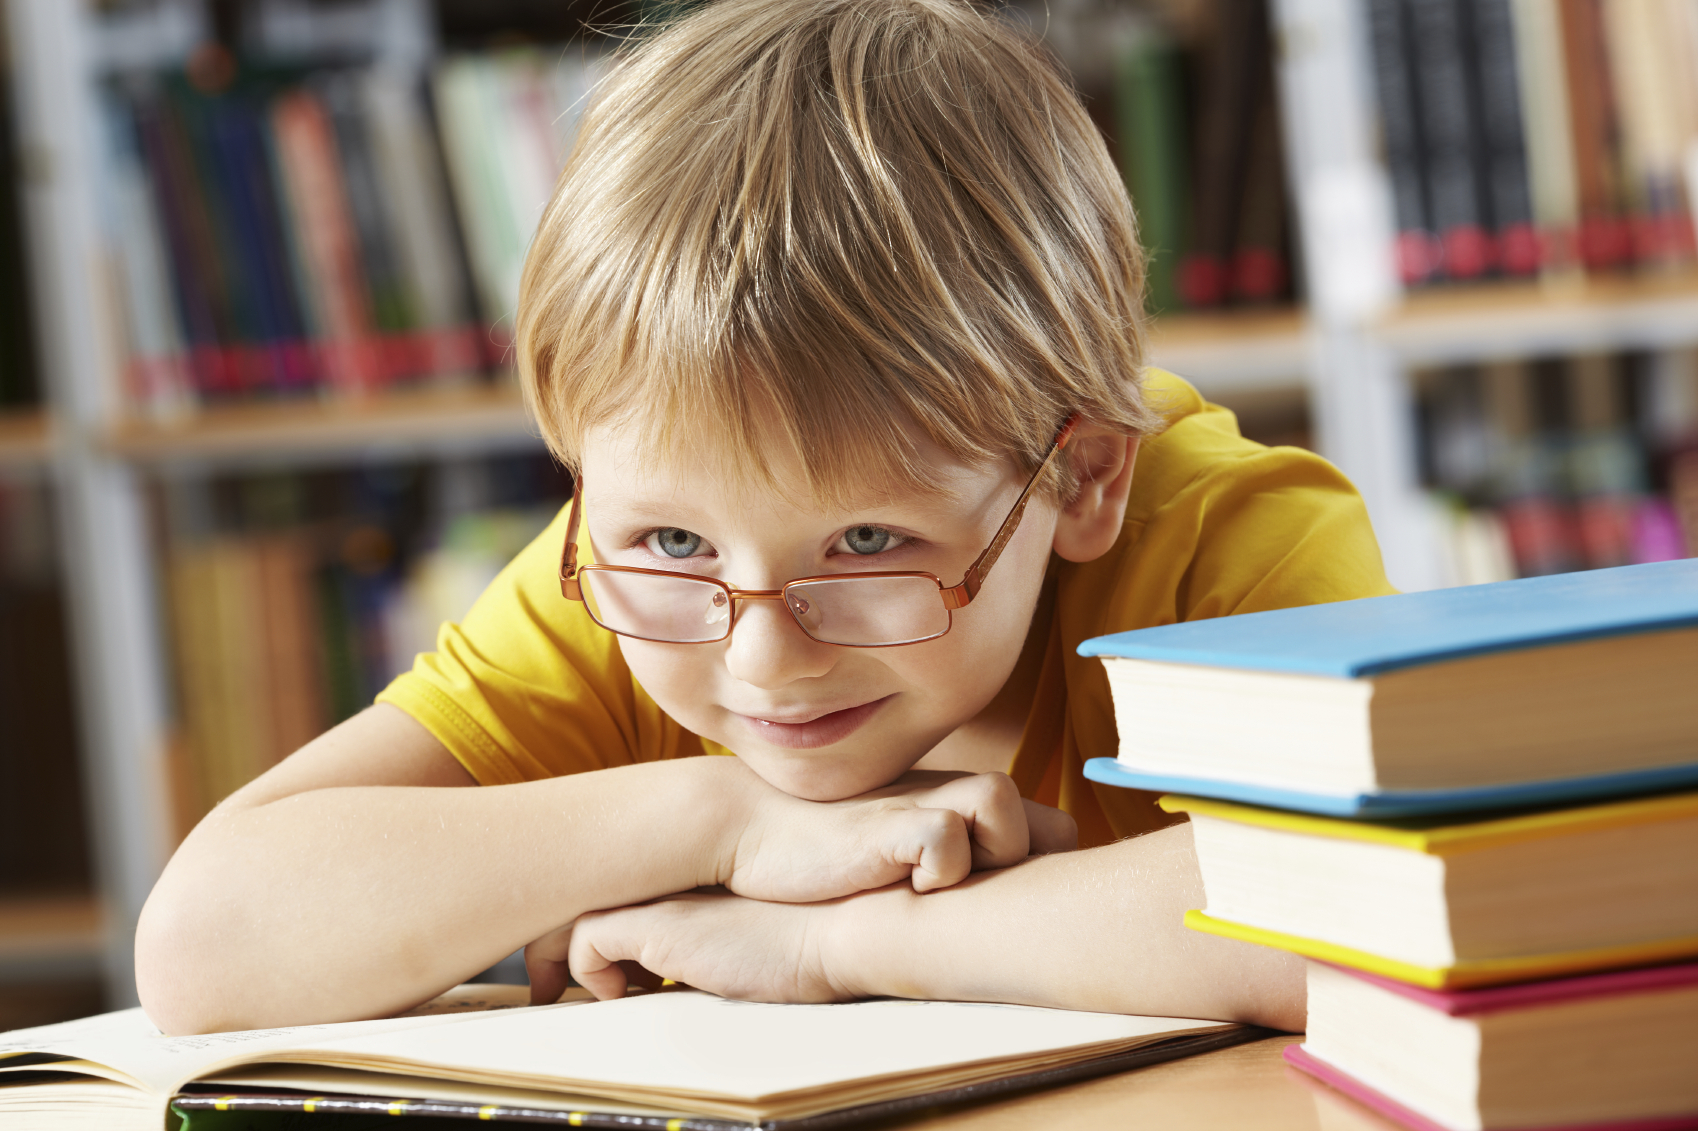 cogmed working memory training for attention deficits in children